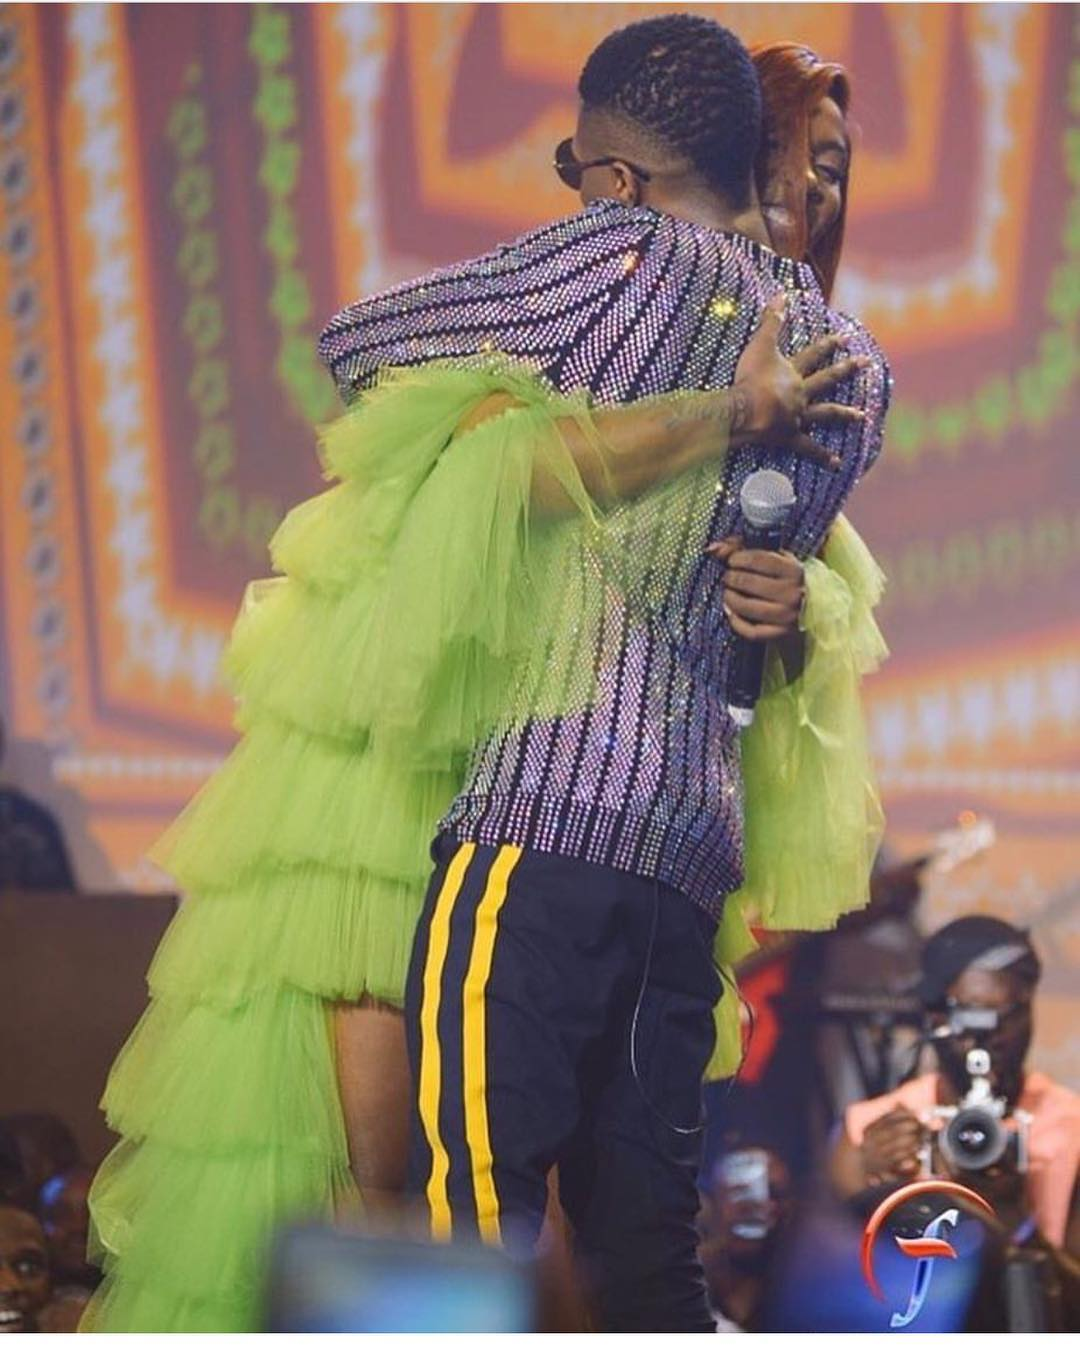 Adorable Moment At Wizkid Concert As Tiwa Savage Hugs Wizkid Tightly On Stage